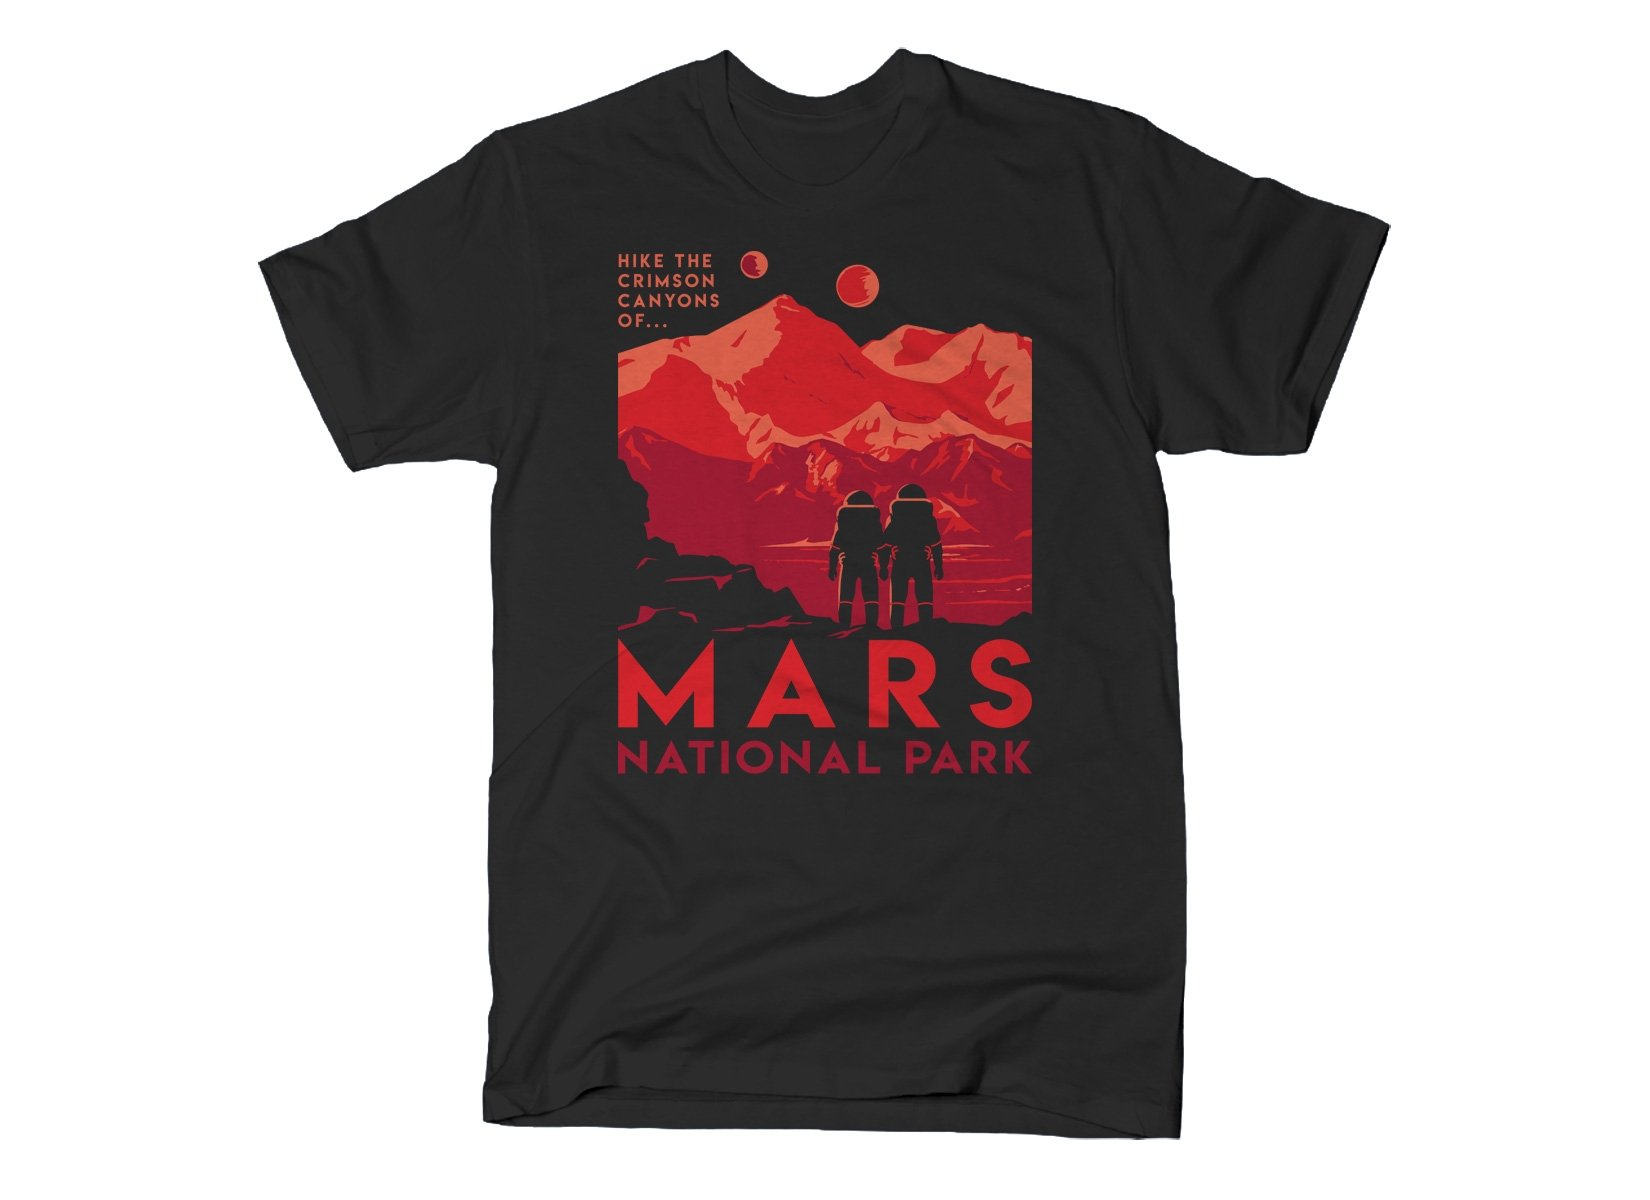 Mars National Park on Mens T-Shirt